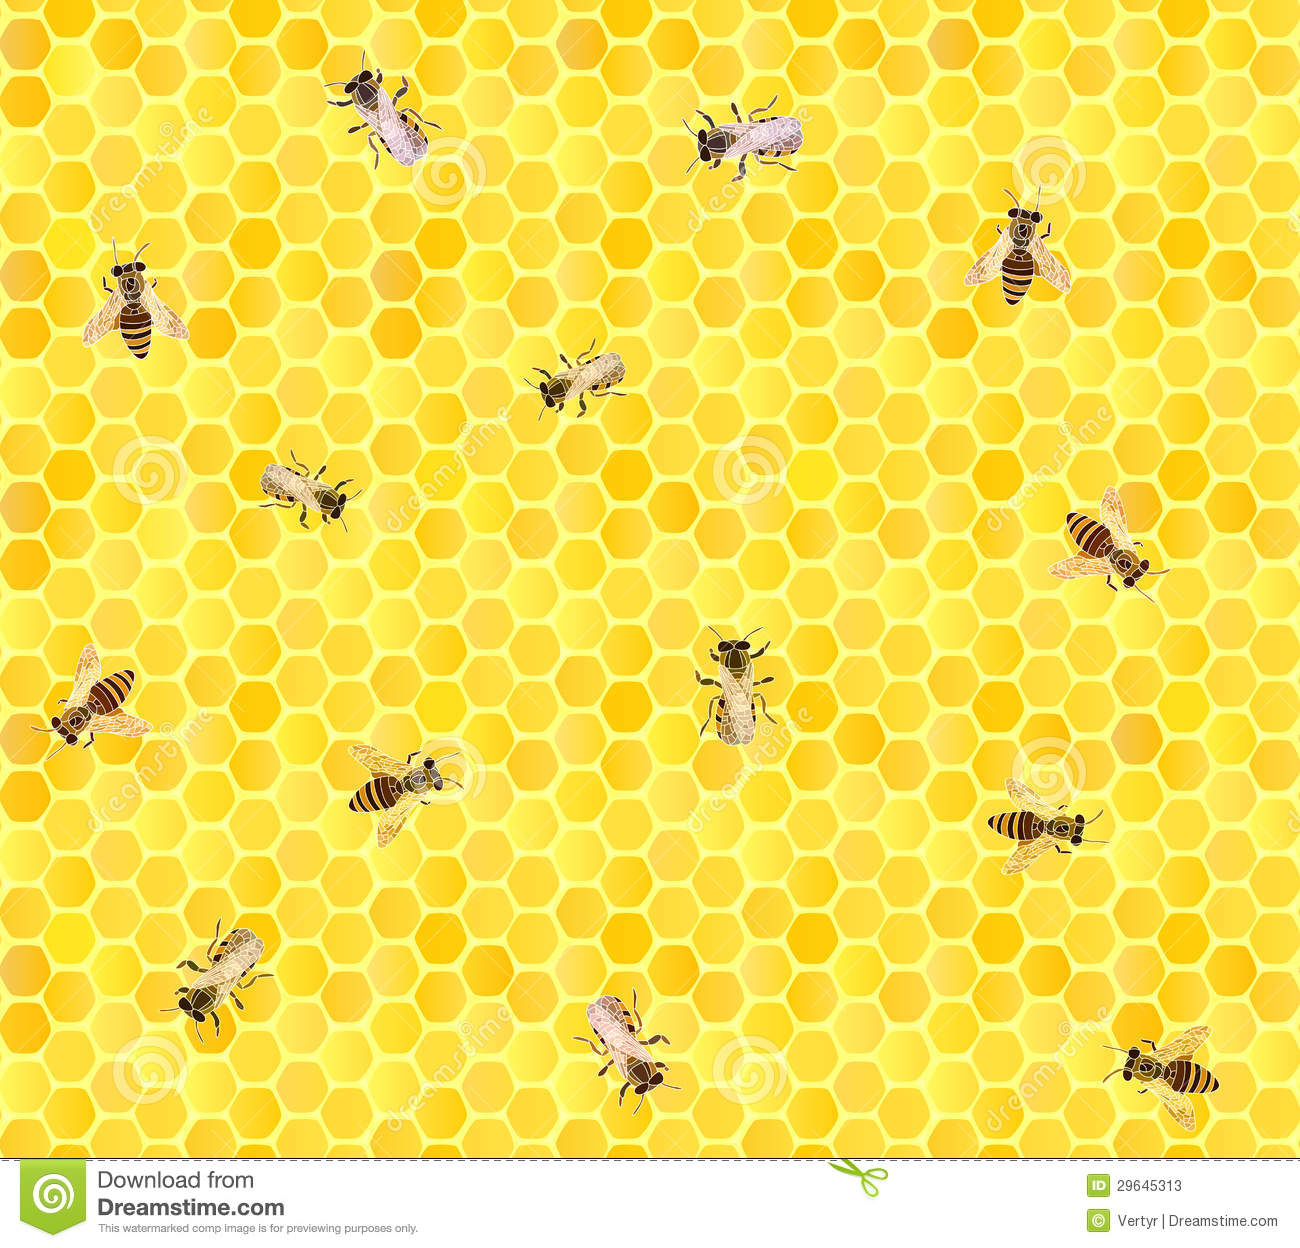 Many bees on honeycomb, seamless background.